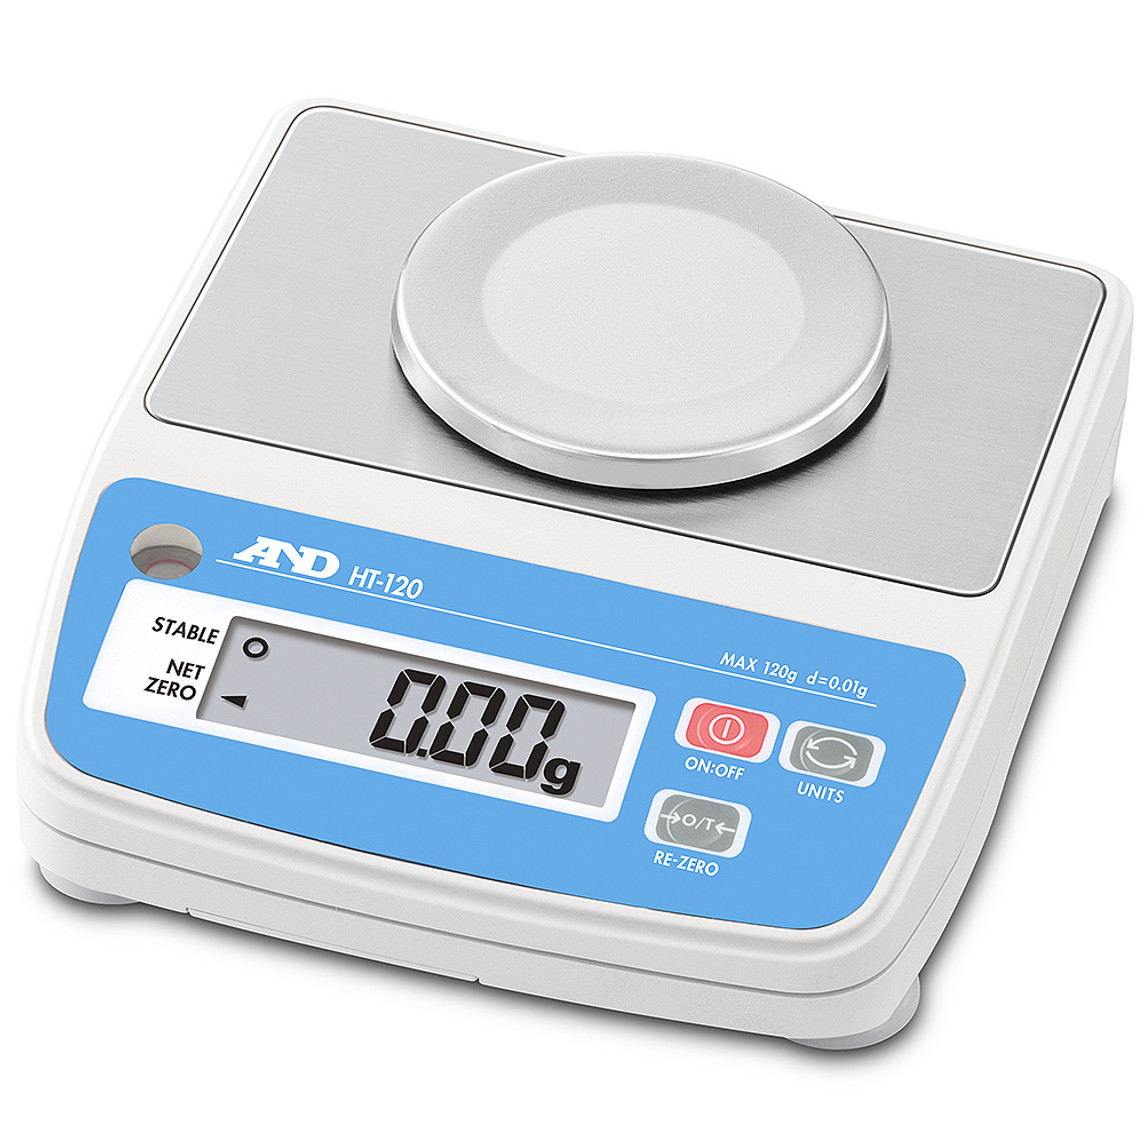 A&D HT-120 0.01g Digital Scales